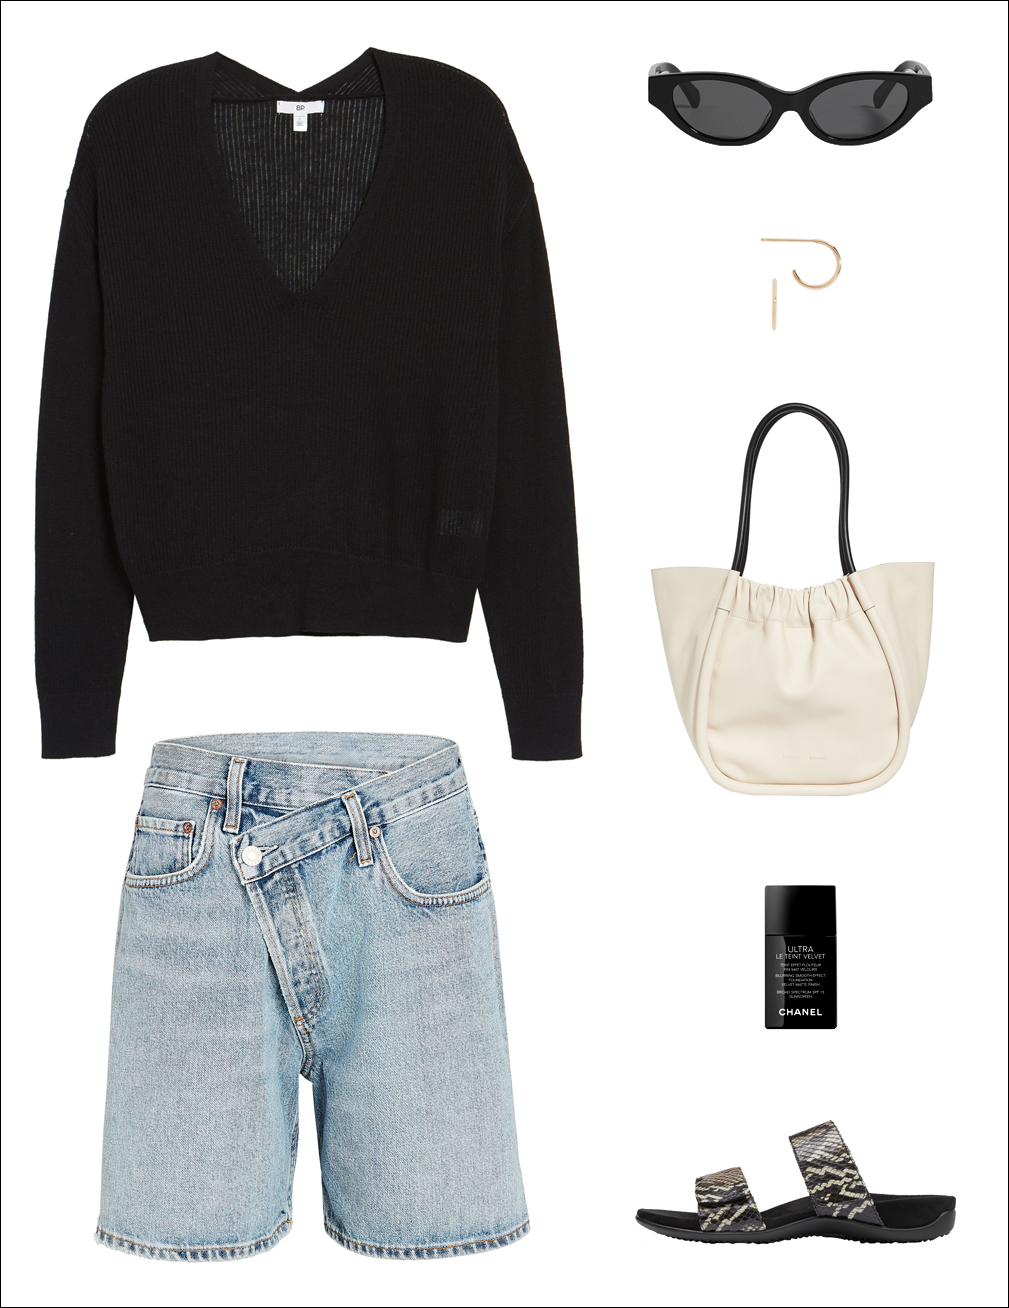 How to Wear Denim Shorts for Fall — Weekend-ready look with lightweight black sweater, black sunglasses, small gold hoop earrings, a statement tote bag, cool denim shorts and flat snakeskin sandals.